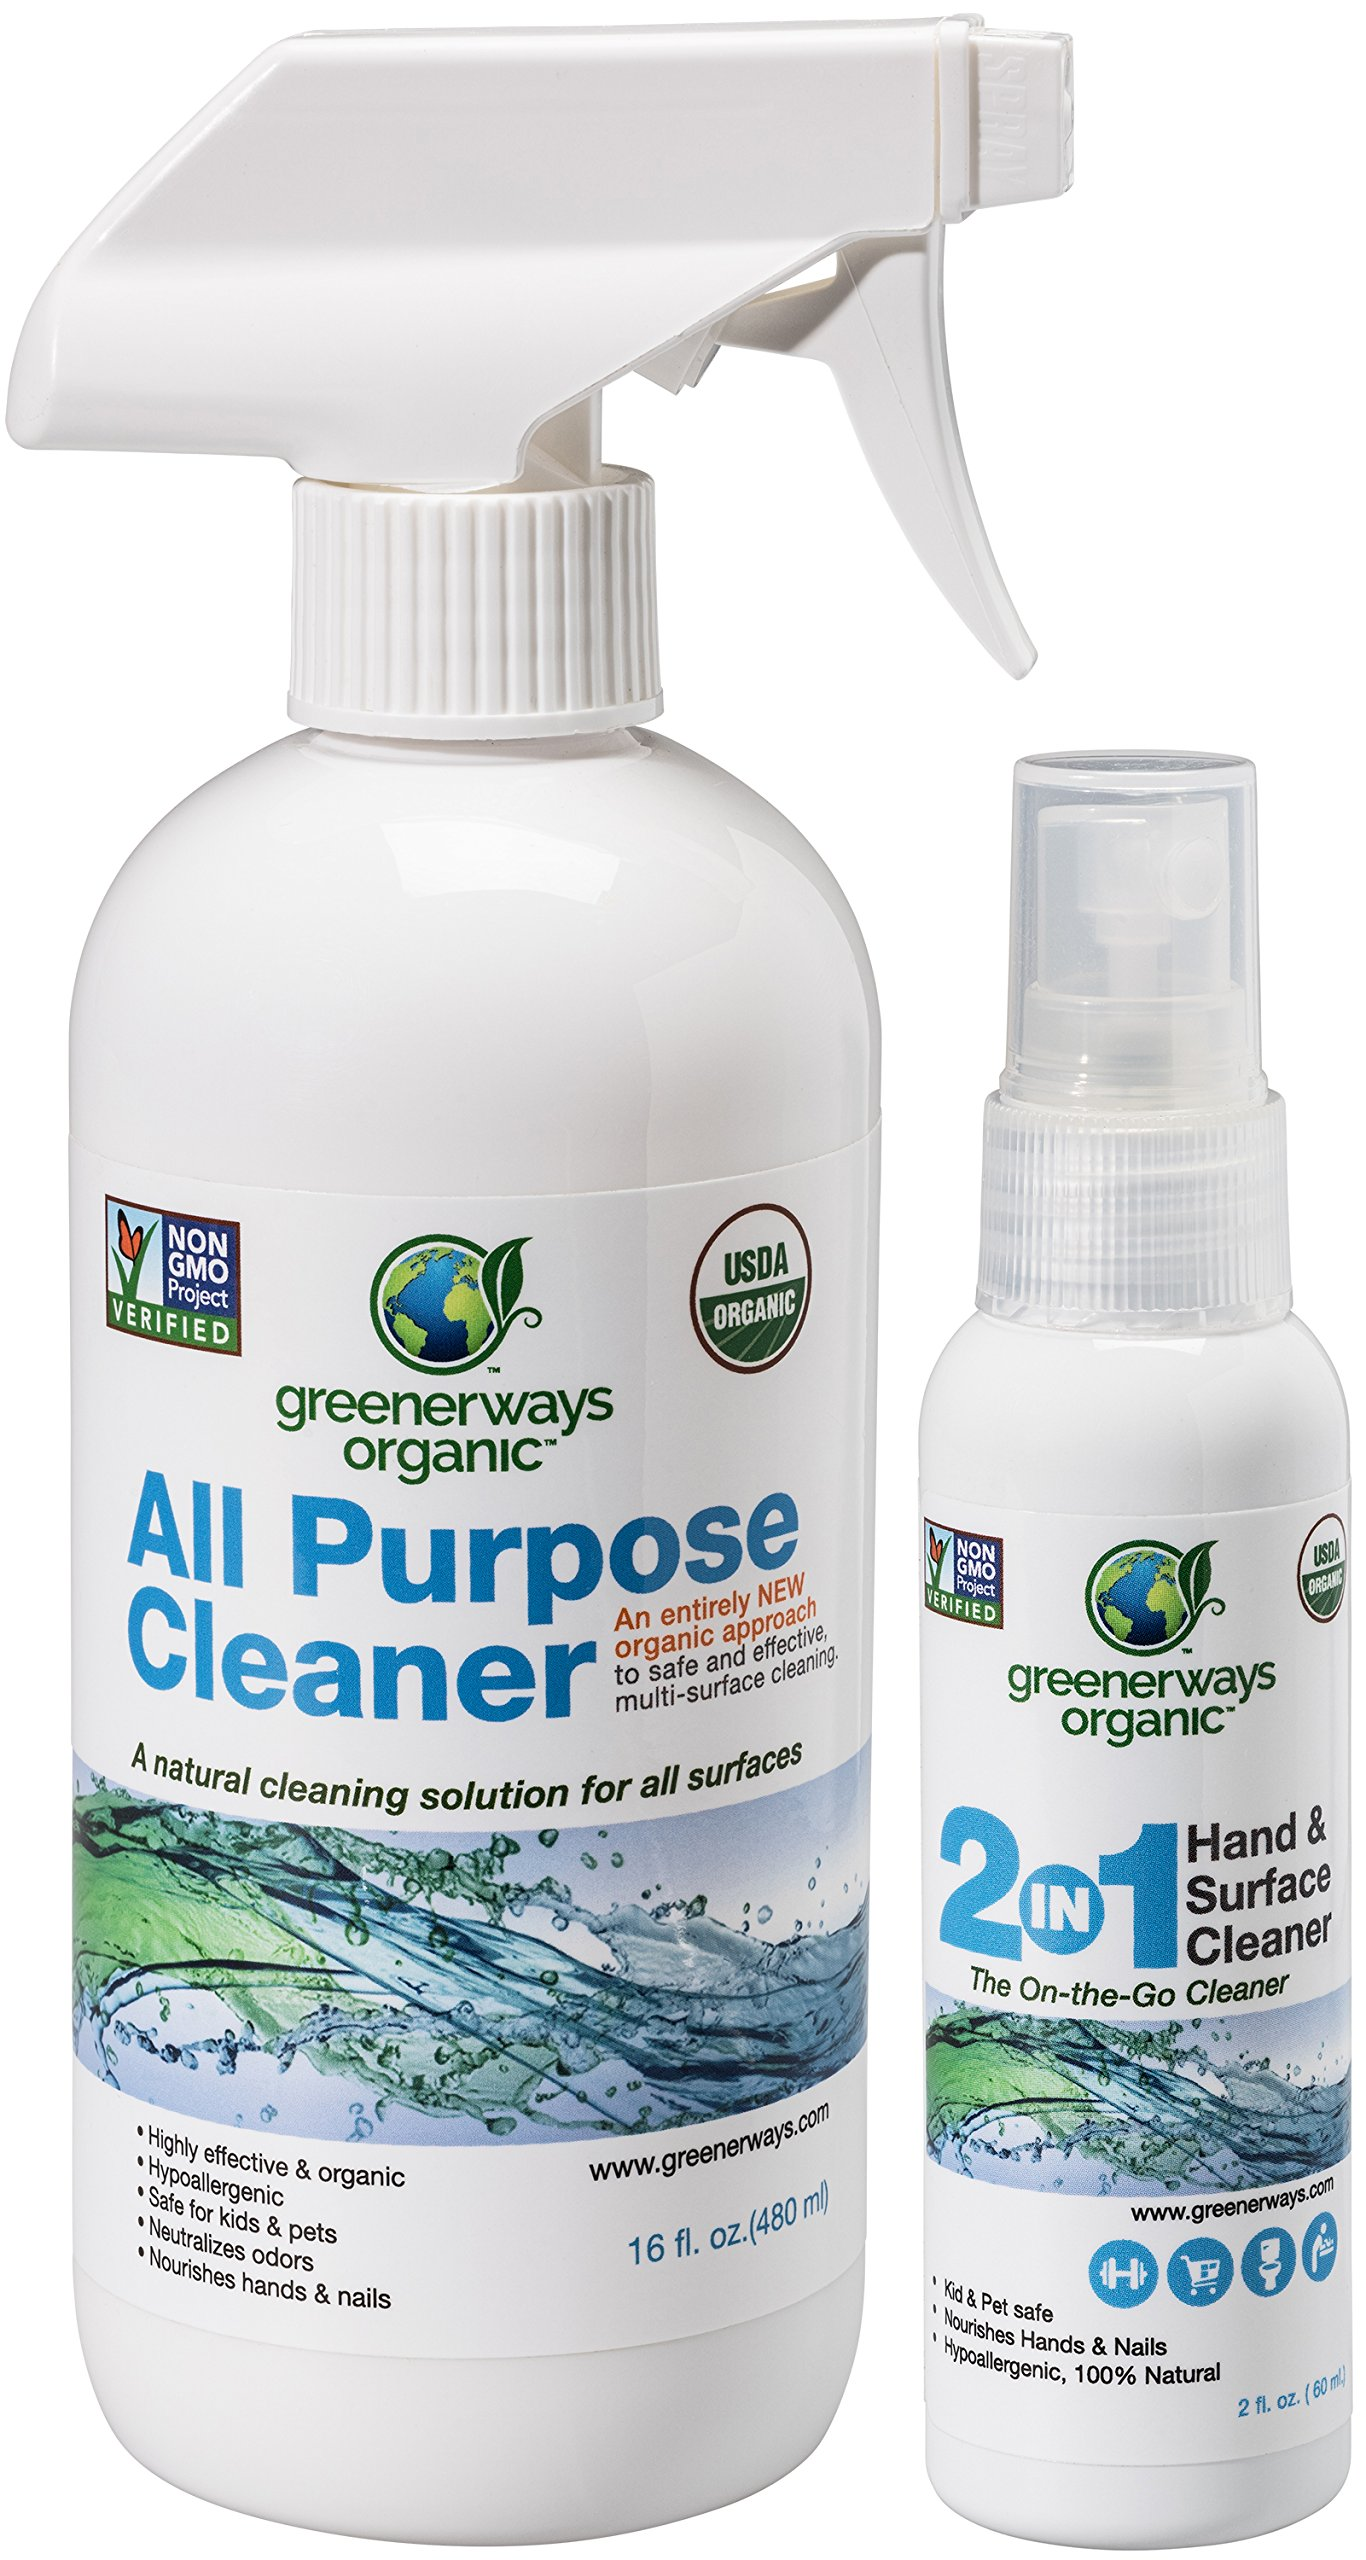 Amazon-Prime-Deals, Greenerways Organic Natural USDA Organic All Purpose Cleaner for Home, Glass, Kitchen, Bathrooms, Windows, Safe Organic Cleaner, Best Organic Cleaner (1) 16oz (1) 2oz - MSRP 17.98